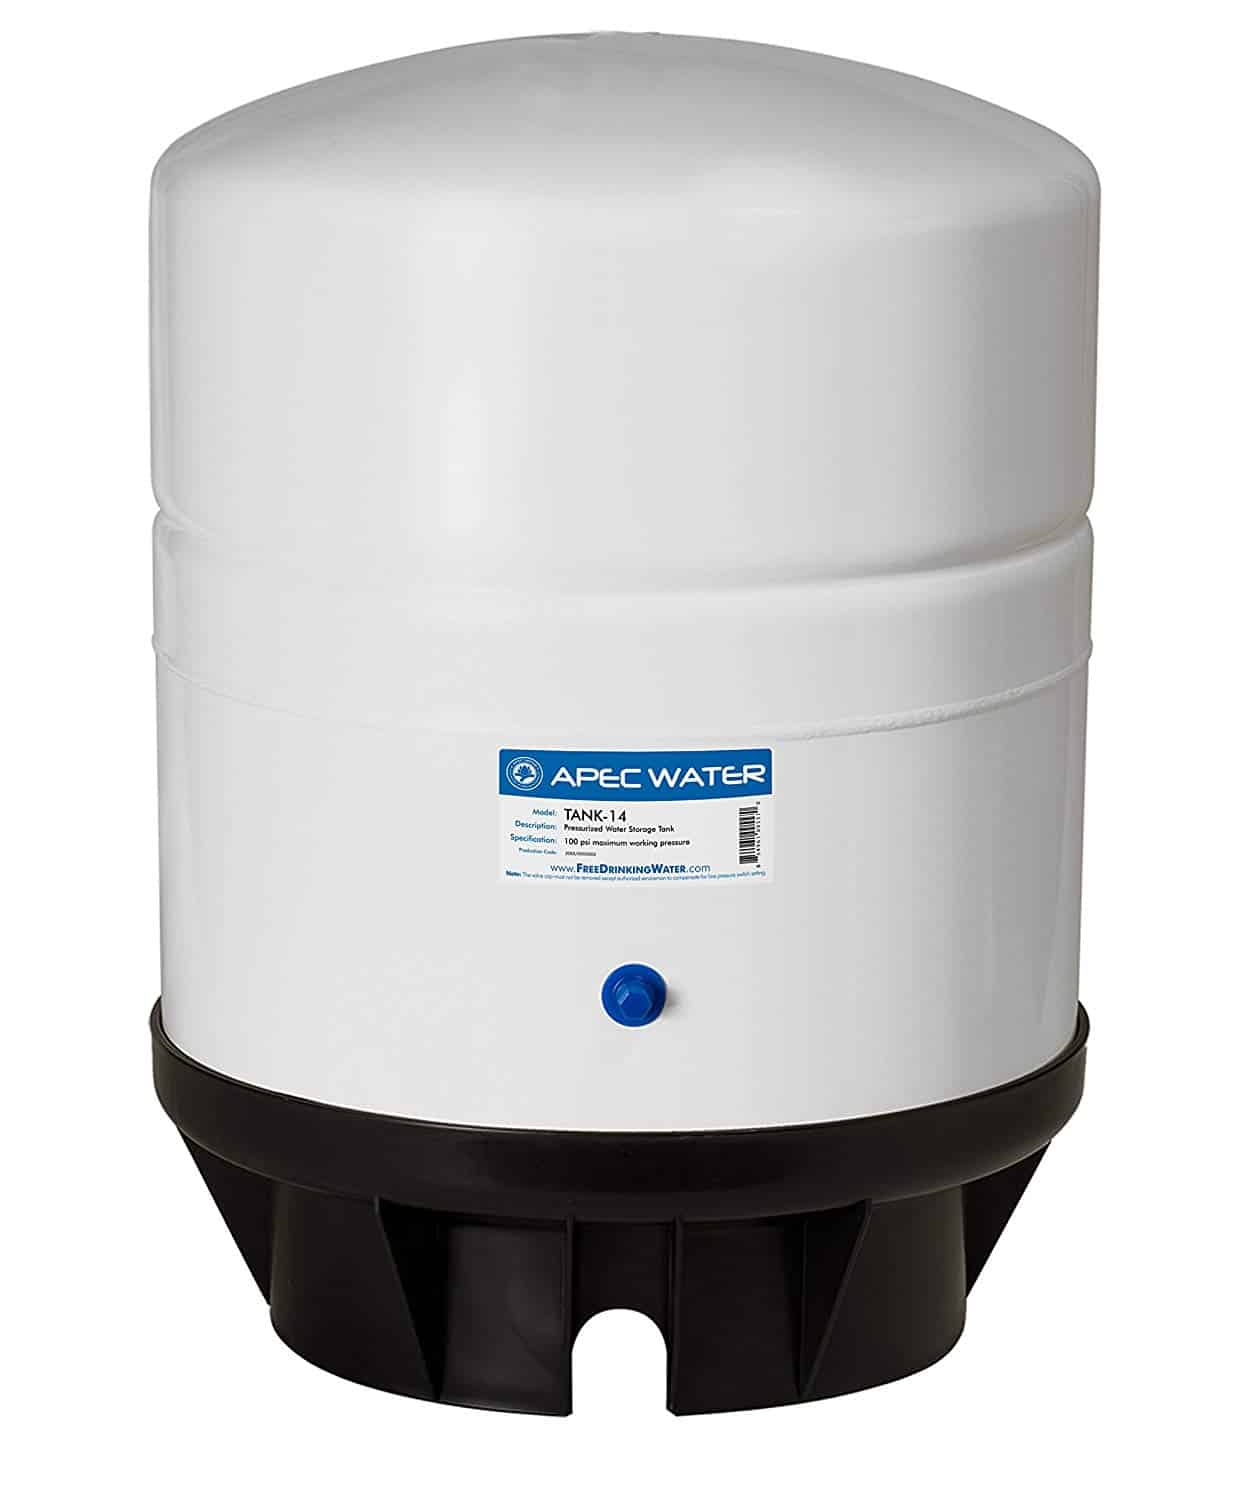 Pre-pressurized Reverse Osmosis Water Storage Tank